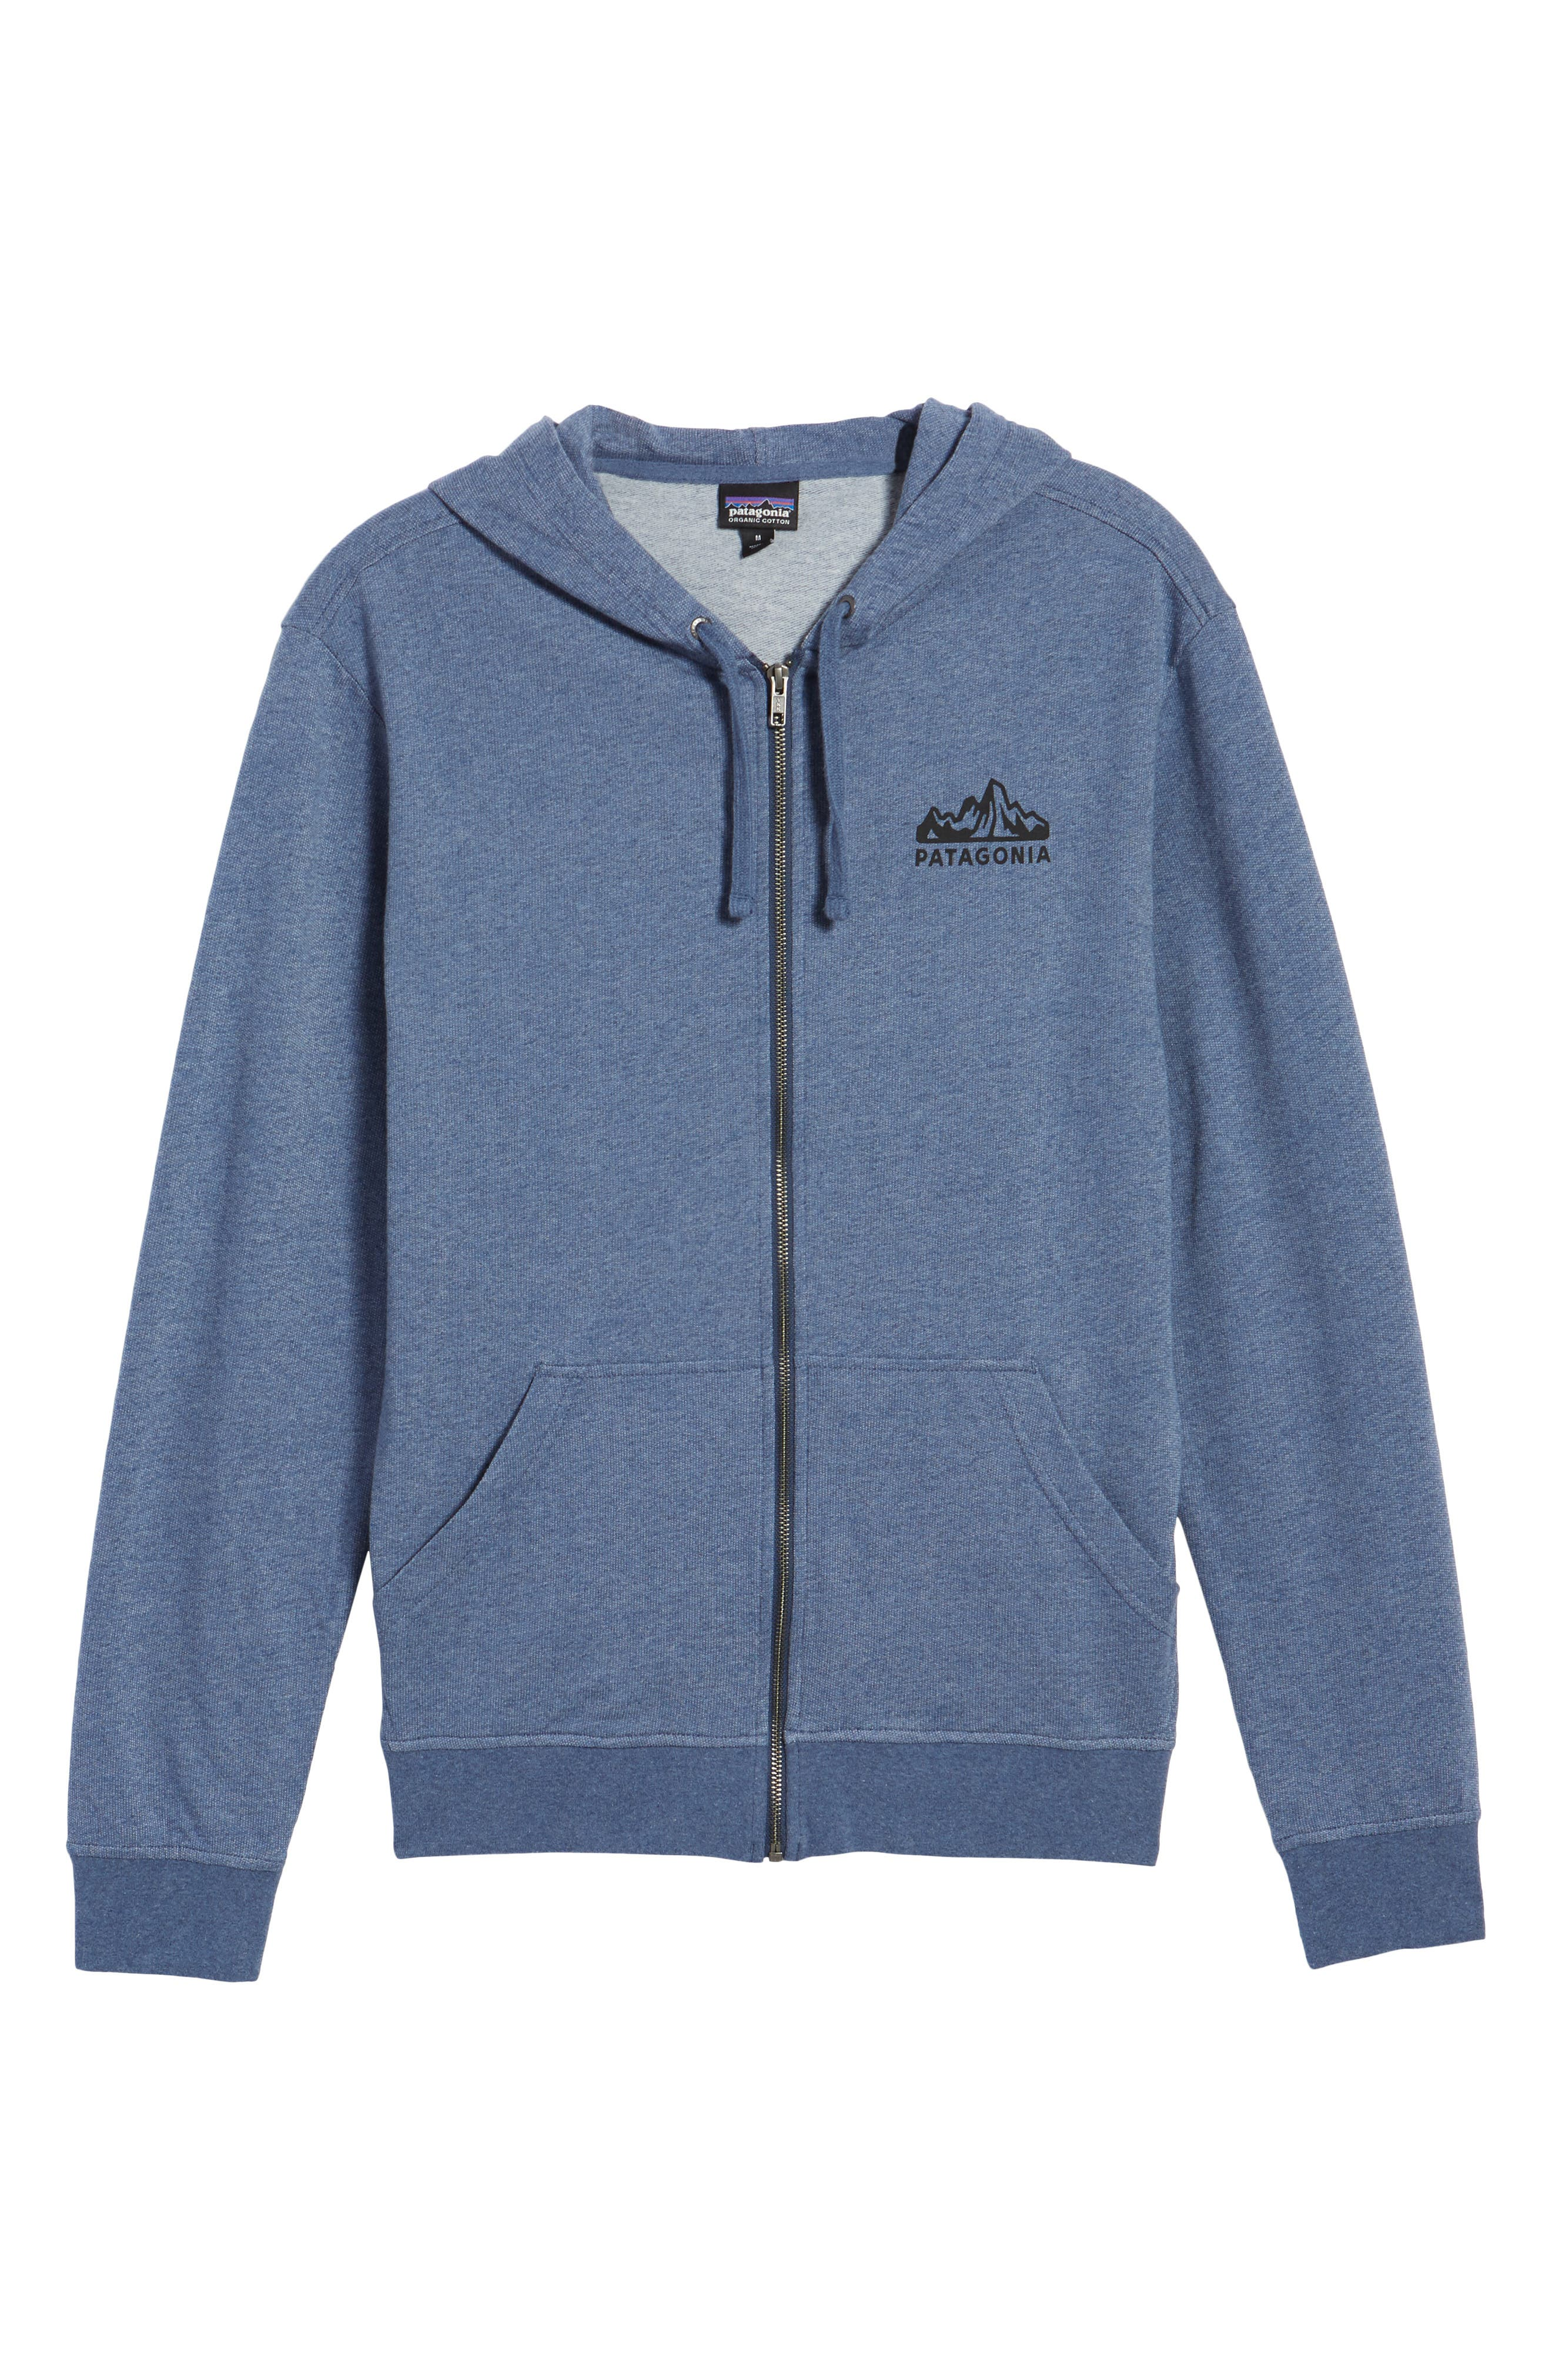 Fitz Roy Frostbite PolyCycle<sup>®</sup> Full Zip Hoodie,                             Alternate thumbnail 6, color,                             Dolomite Blue